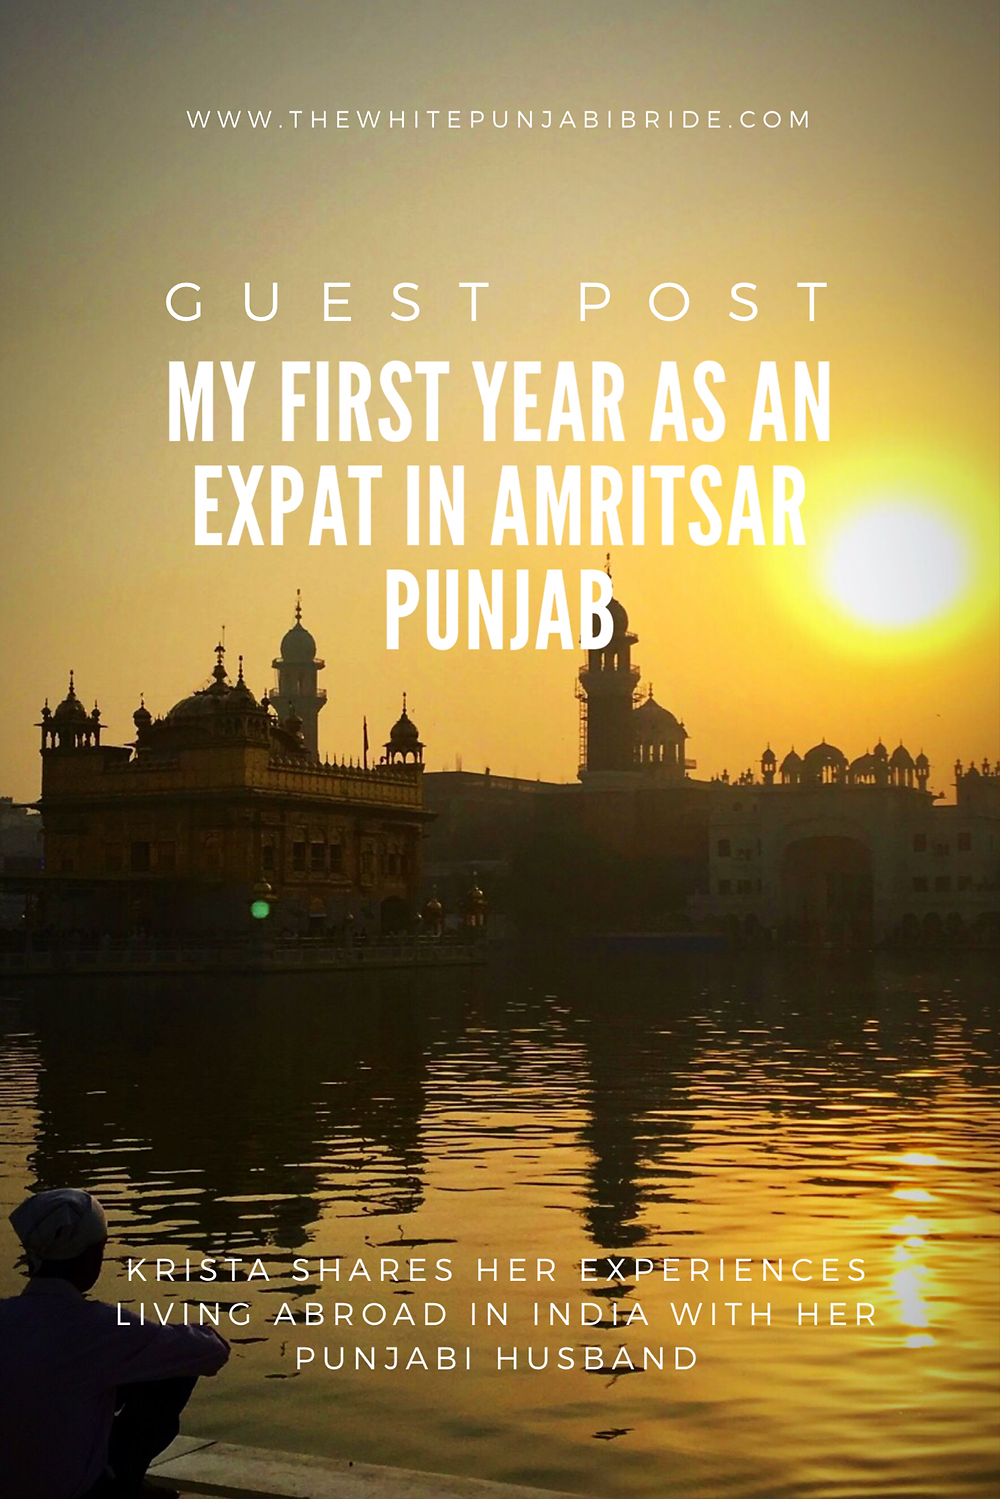 My First Year As An Expat In Amritsar Punjab